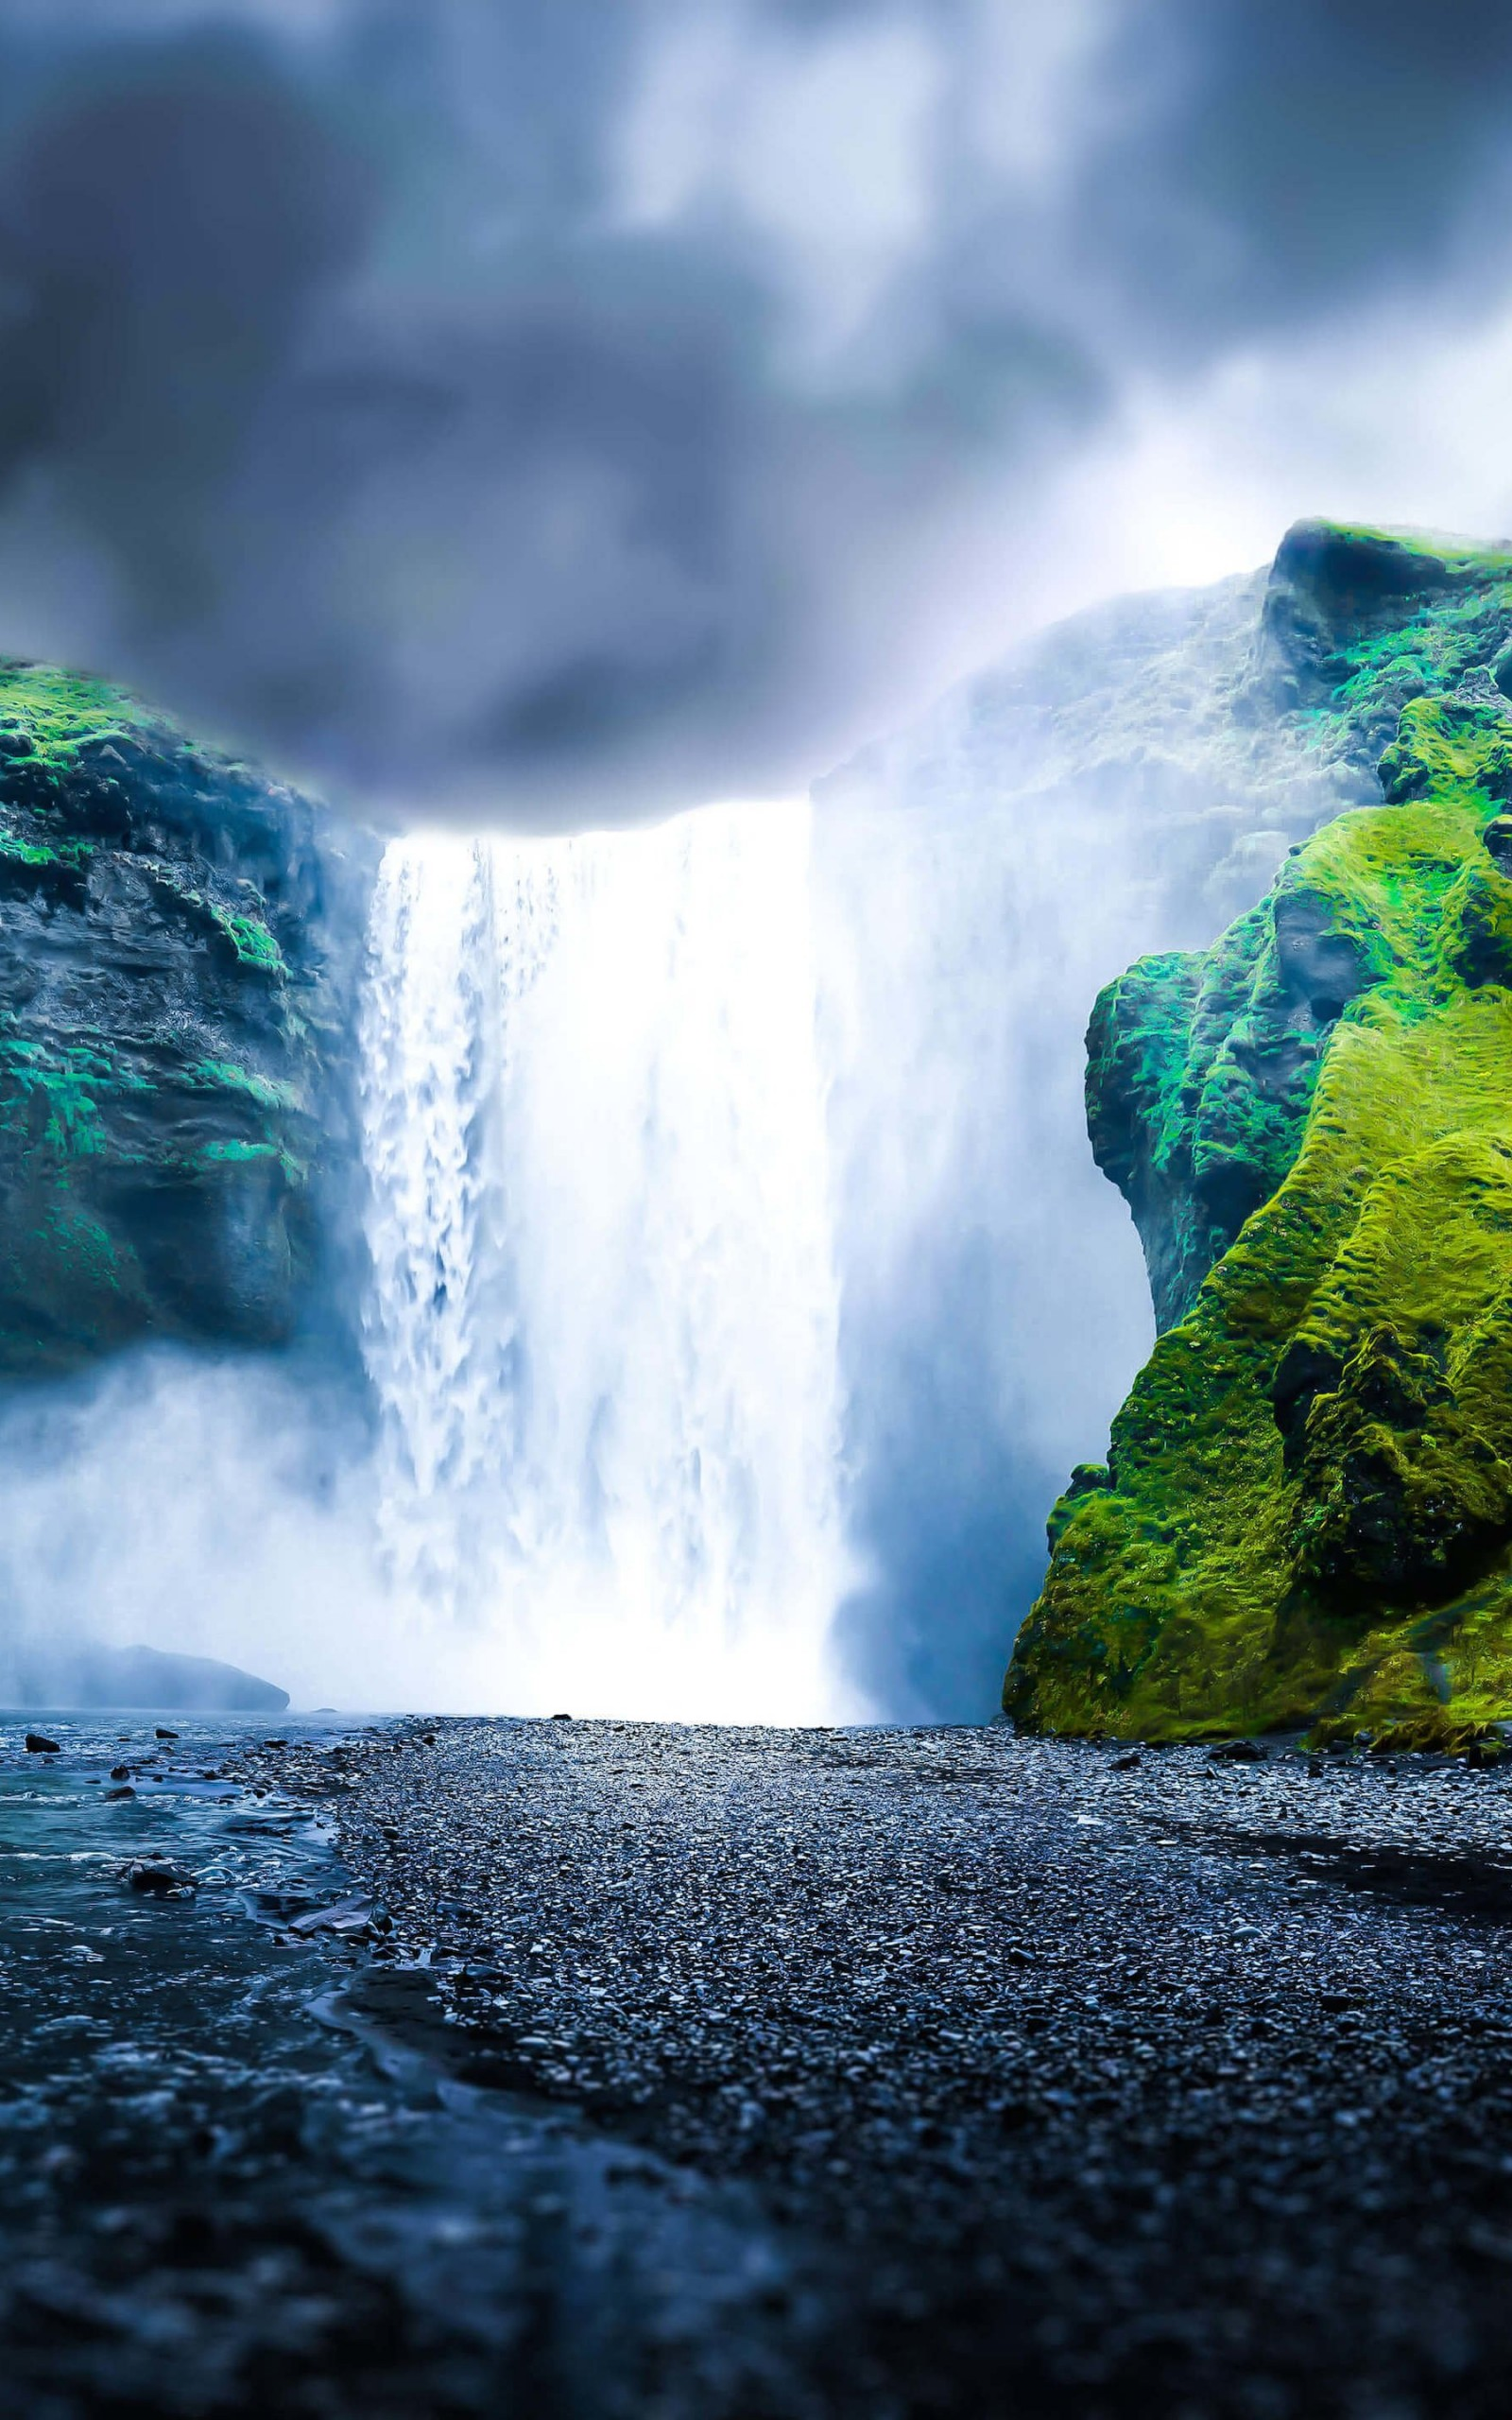 download dreamy waterfall hd wallpaper for kindle fire hdx